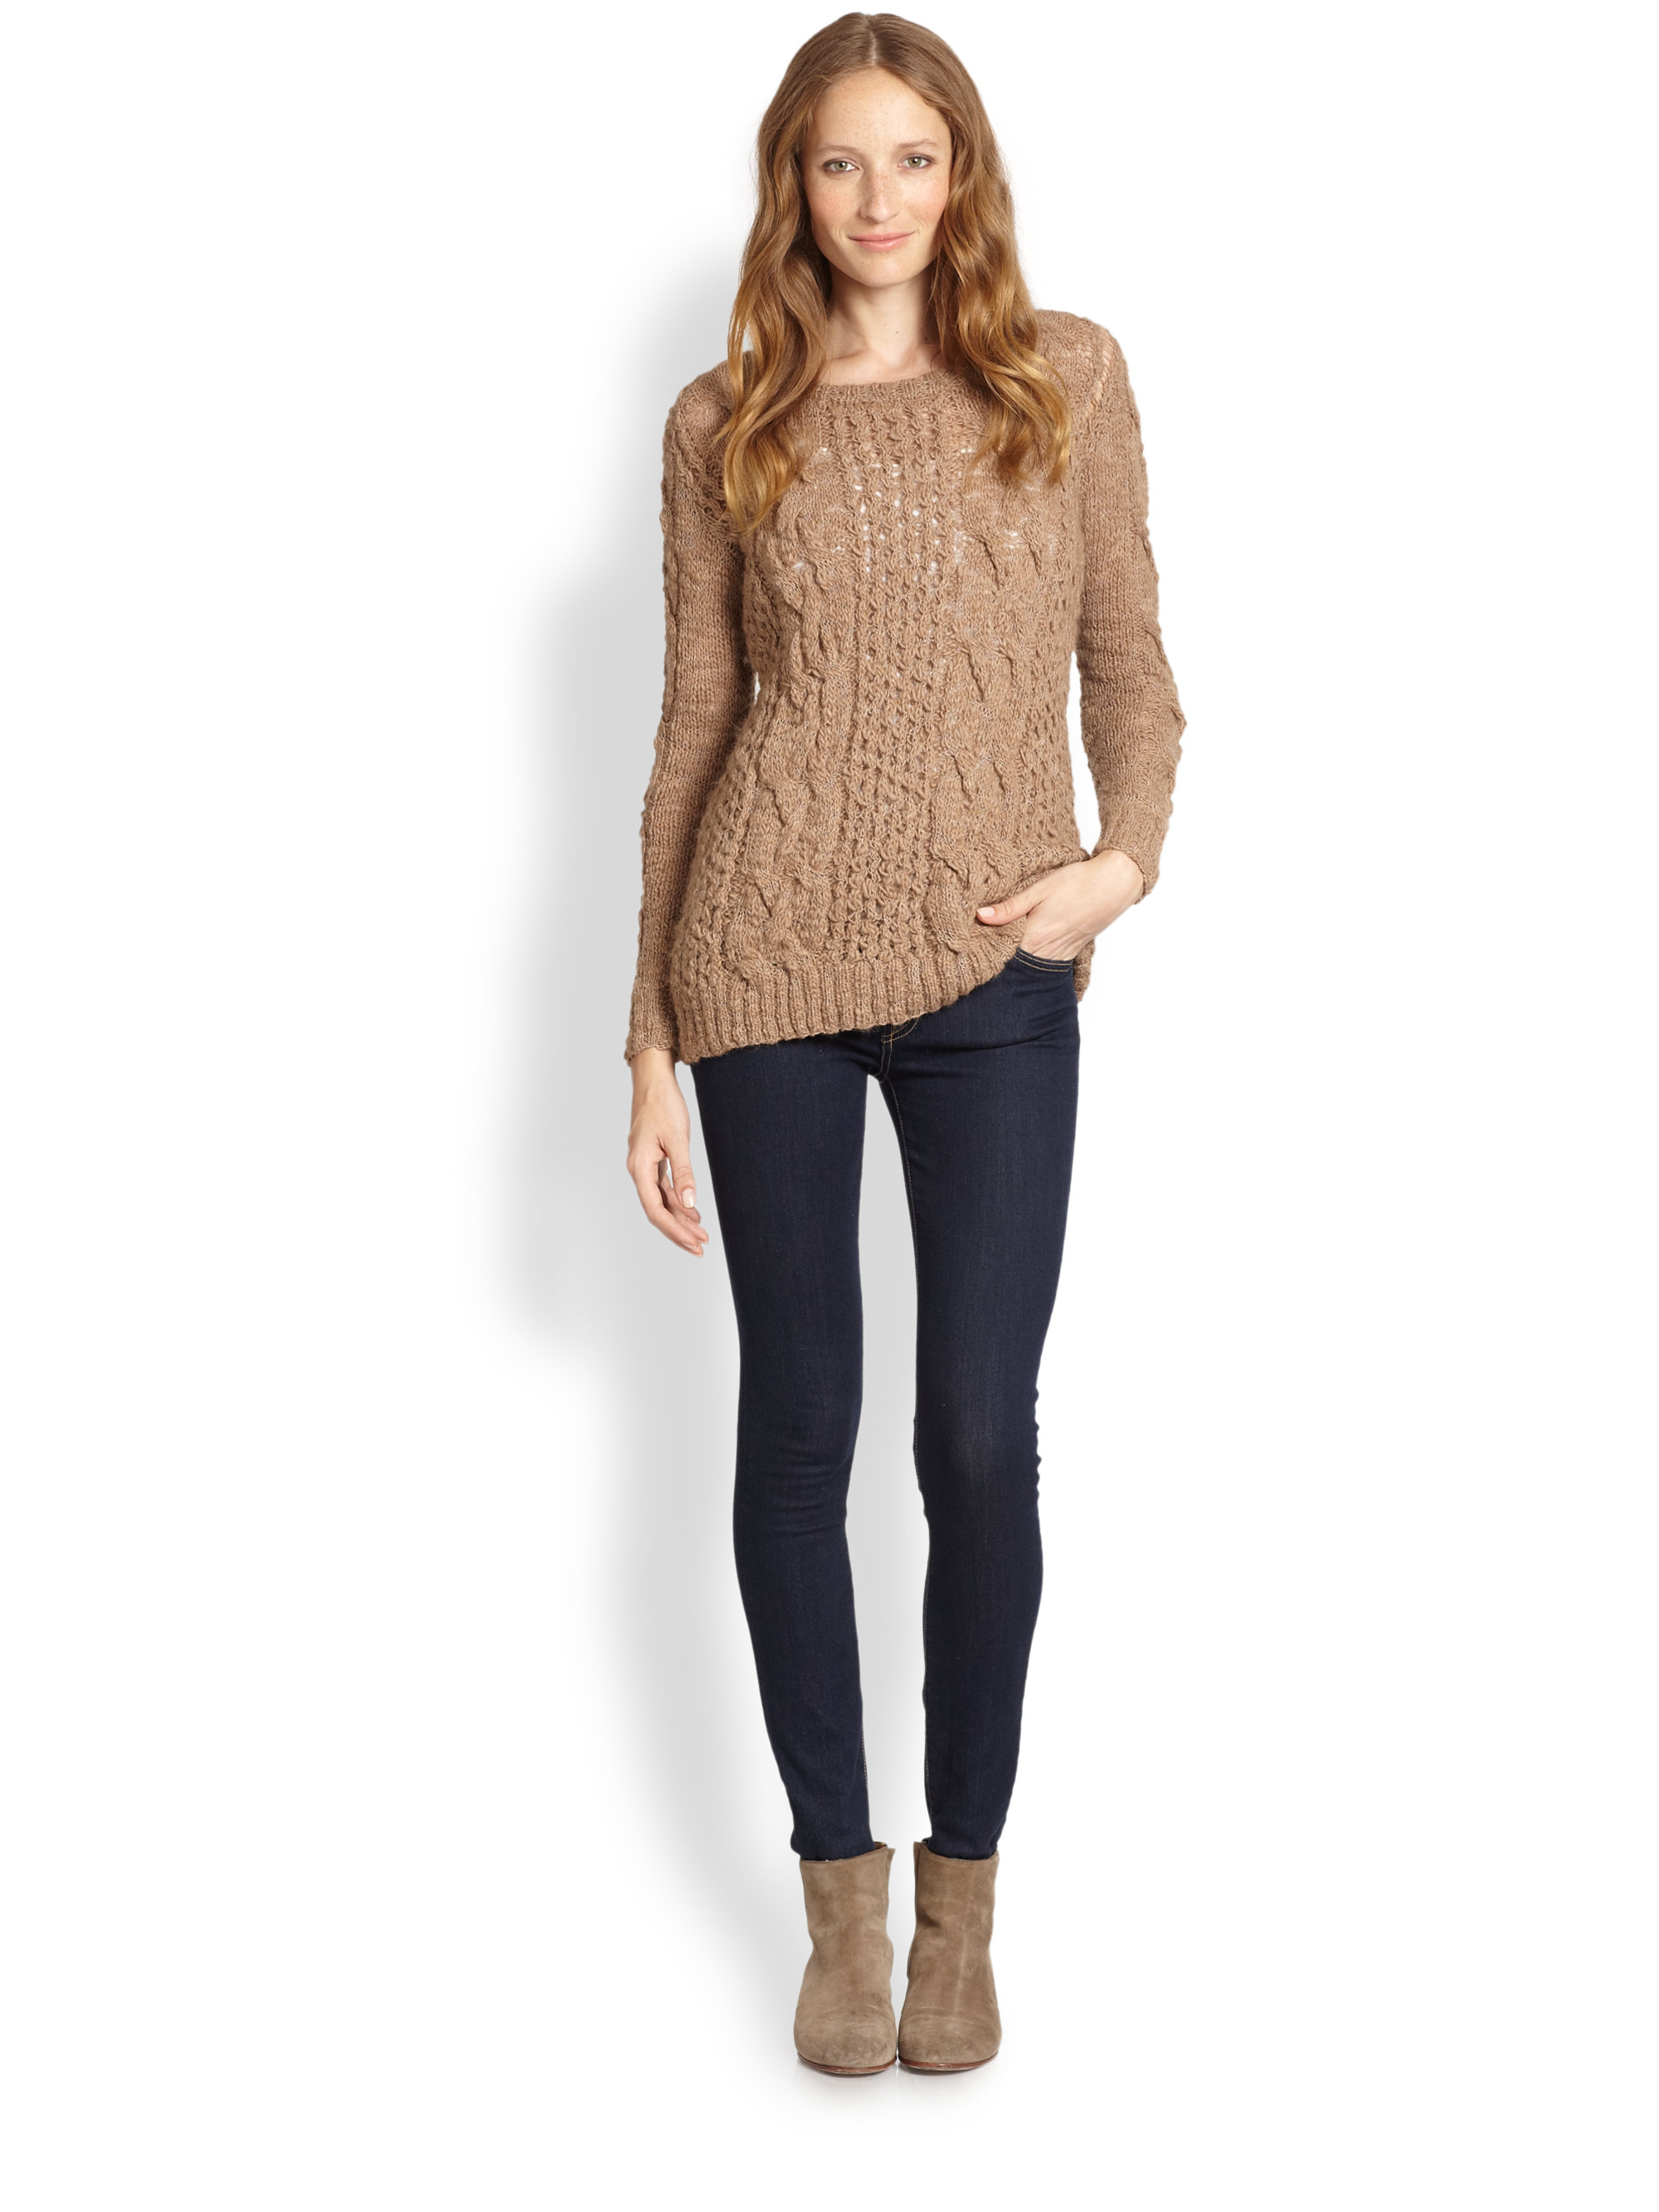 Brown Cable Knit Sweater Choice Image - Craft Design Ideas